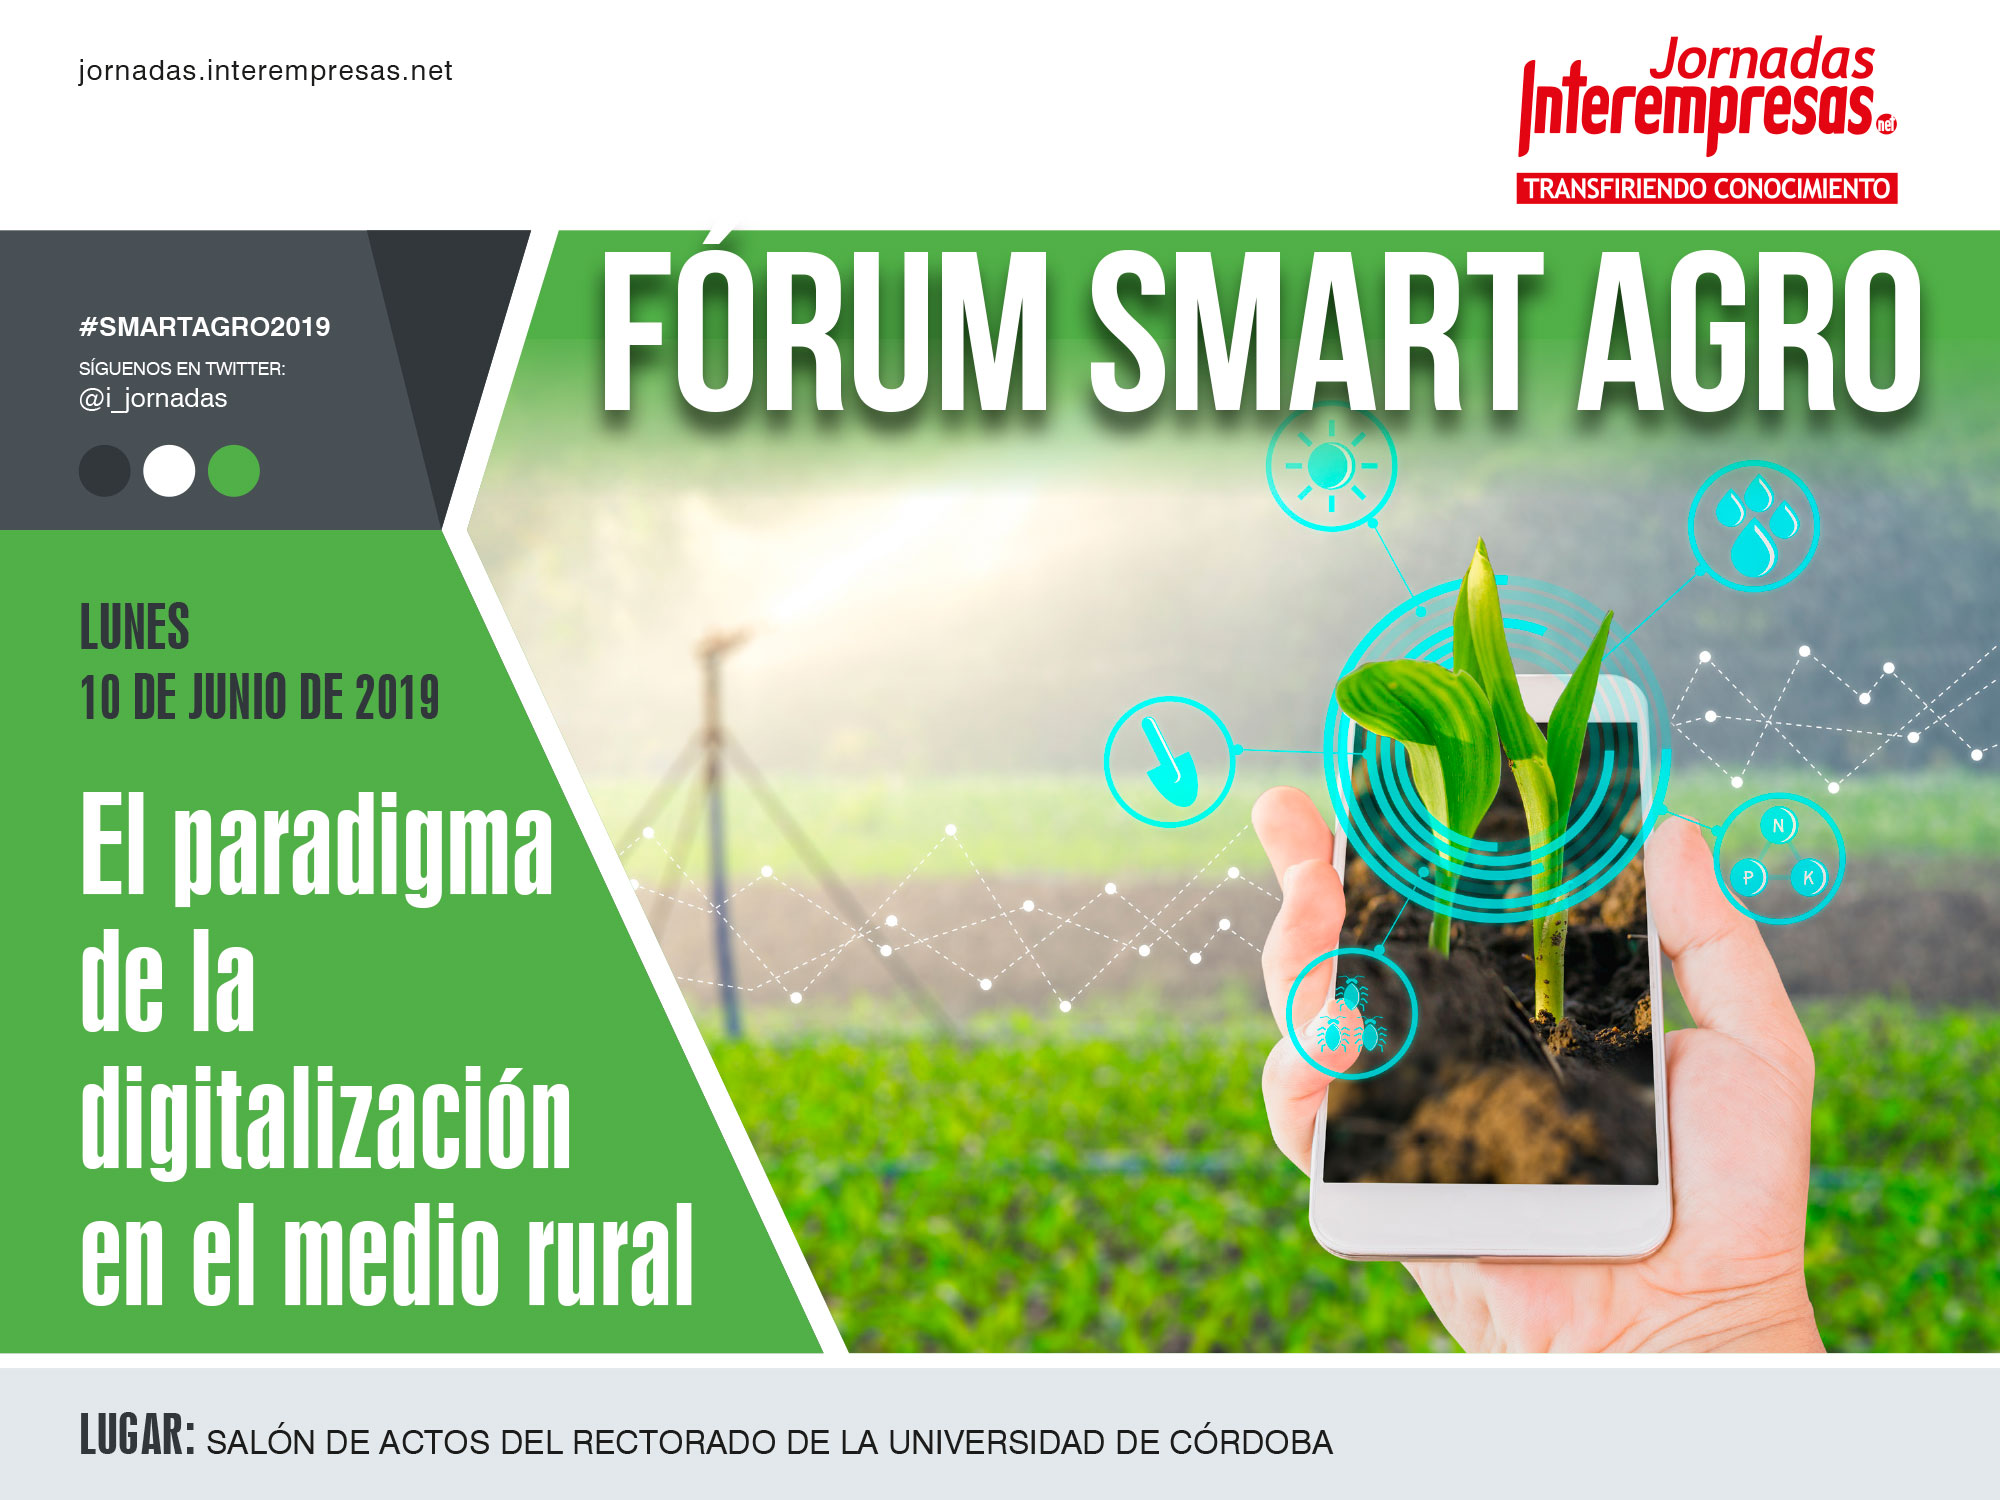 cartel de Fórum Smart Agro 2019